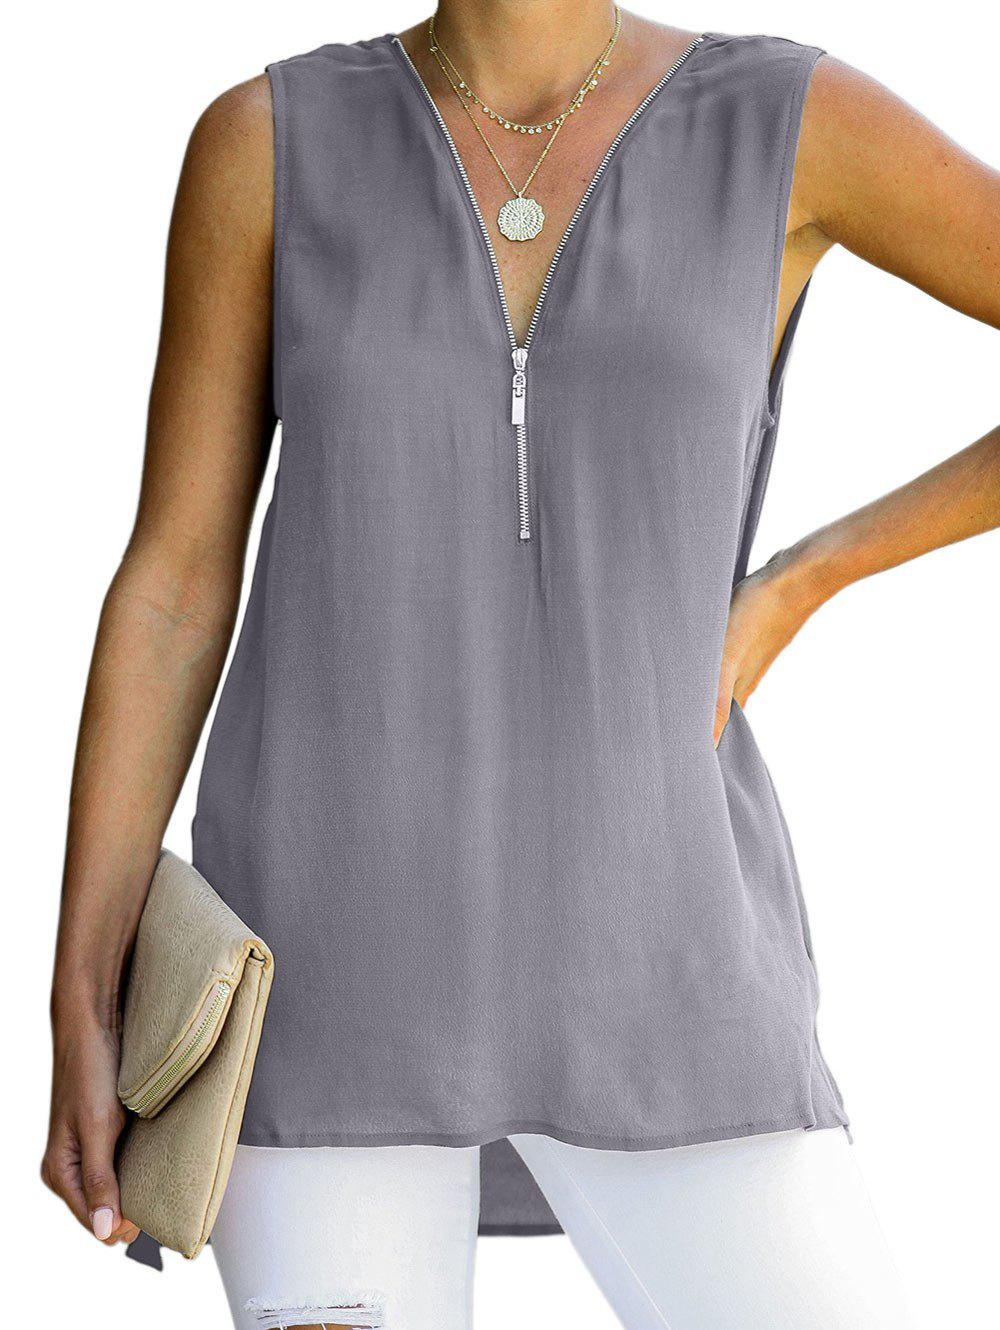 Zip avant Plongeant Criss Cross High Low Slit Tank Top - Gris L